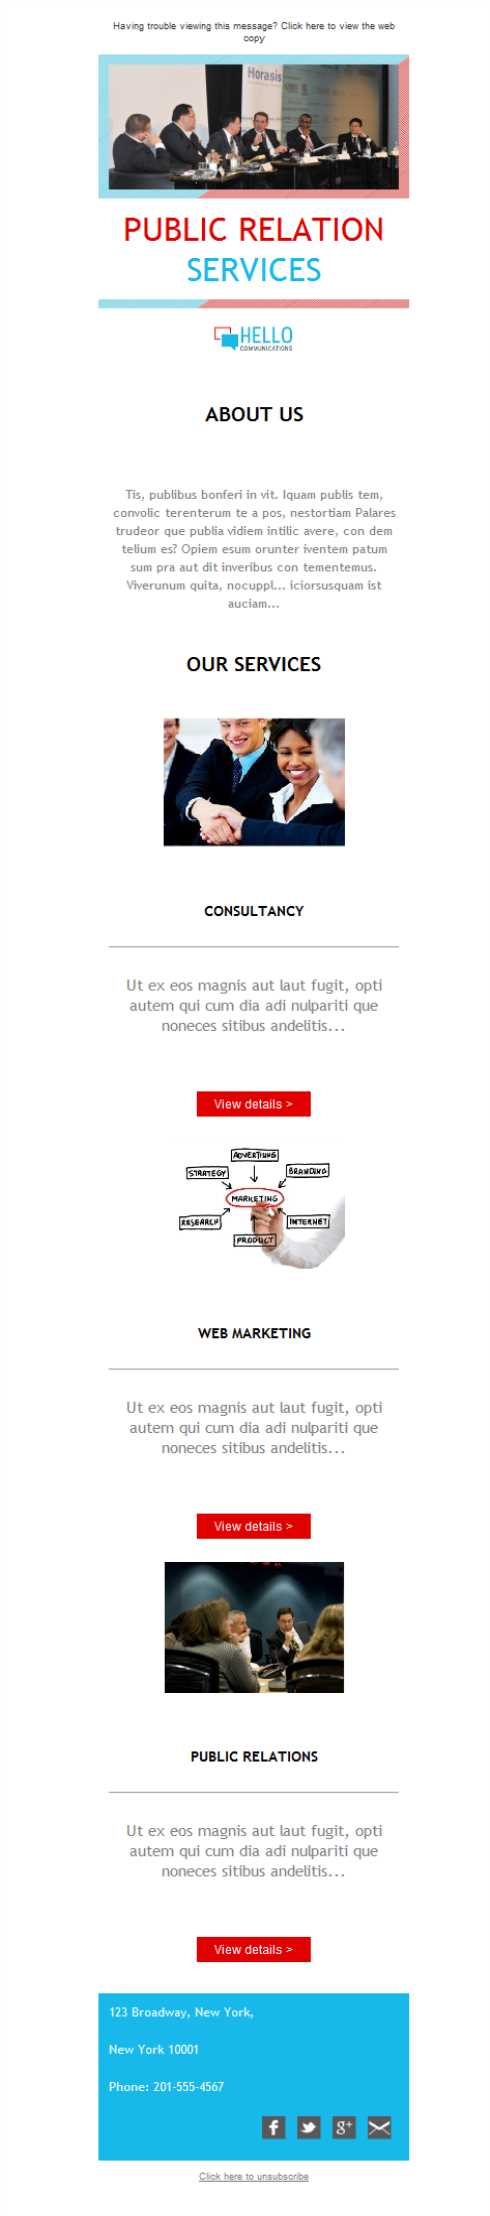 Templates Emailing PR Marketing Firm Sarbacane